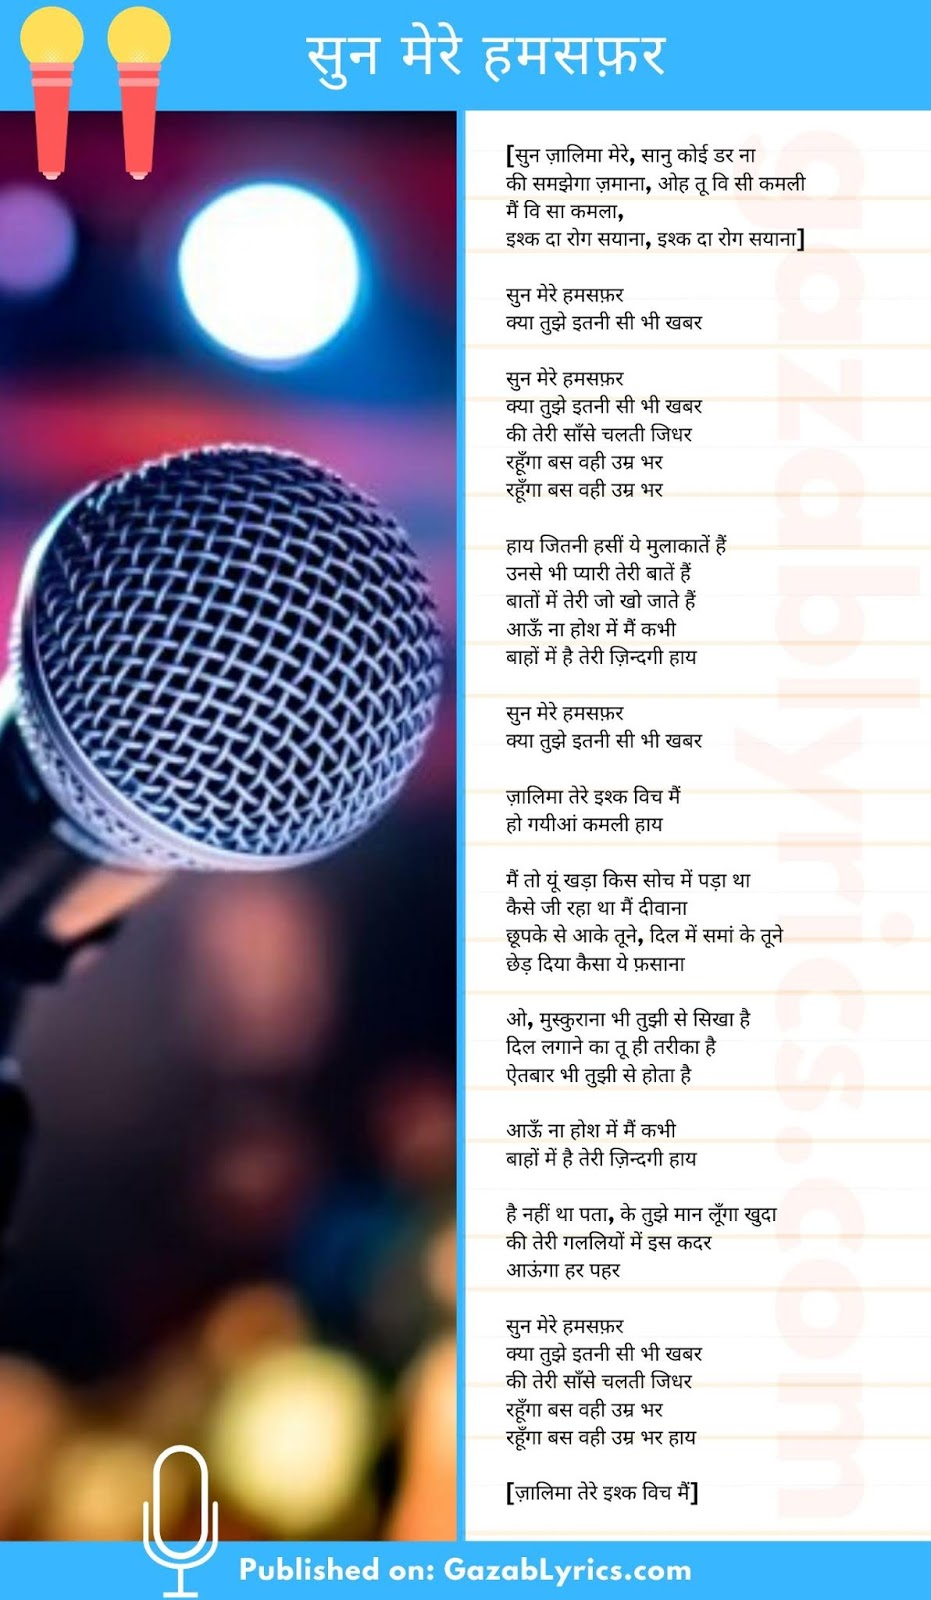 Humsafar song lyrics image